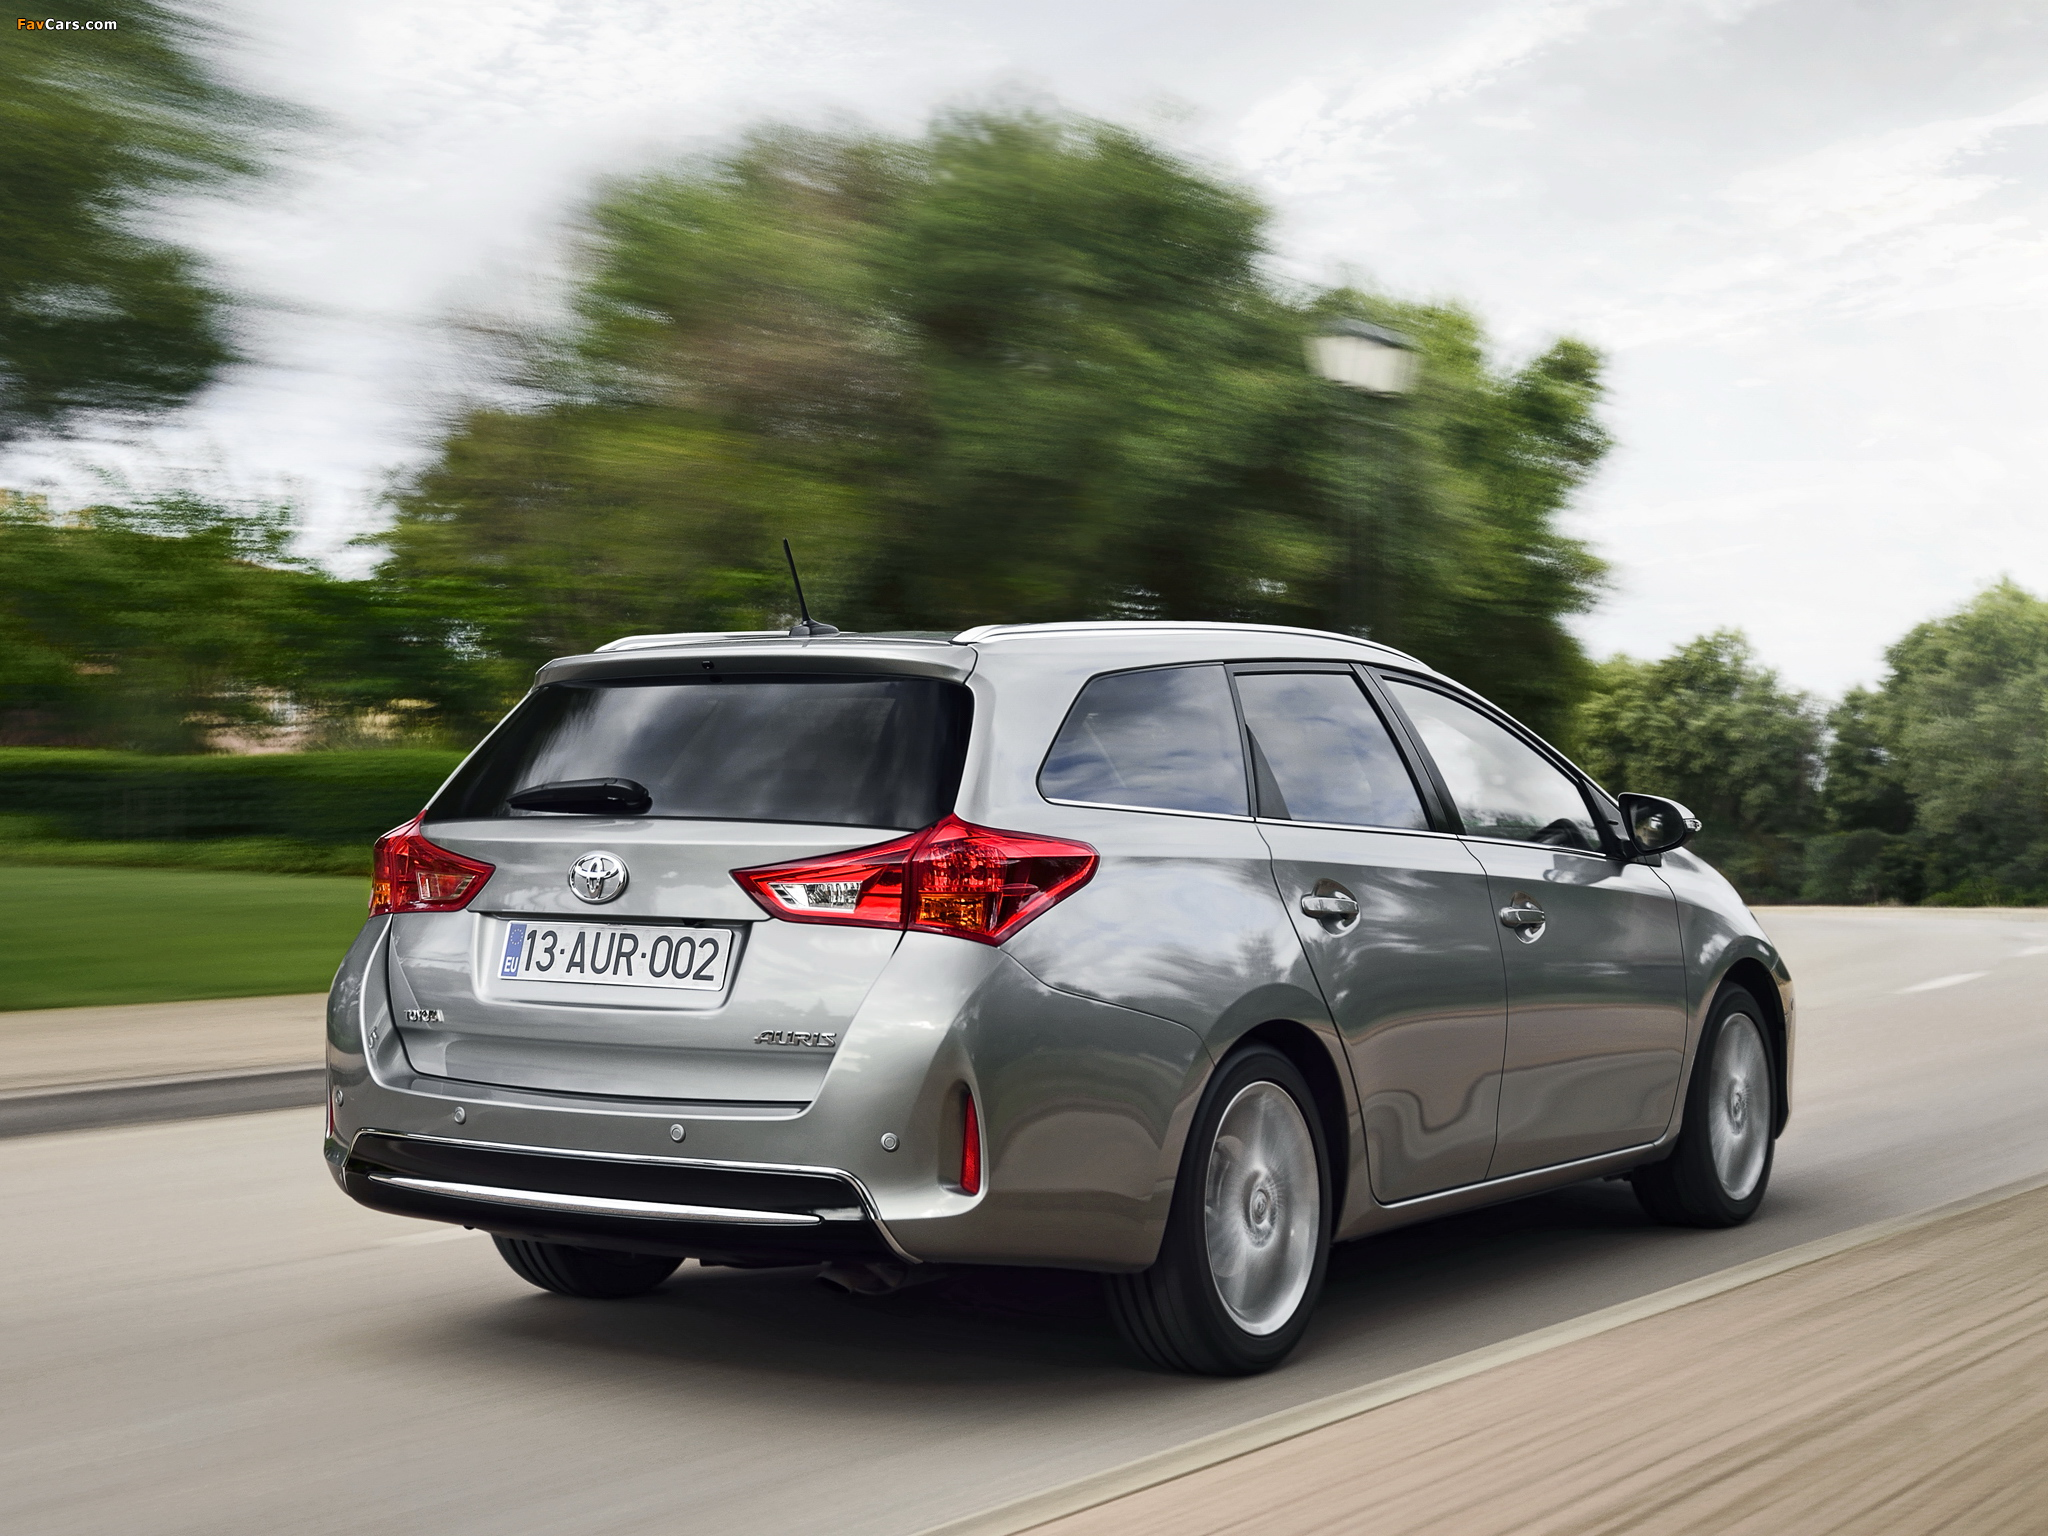 Toyota Auris Touring Sports 2013 images (2048 x 1536)